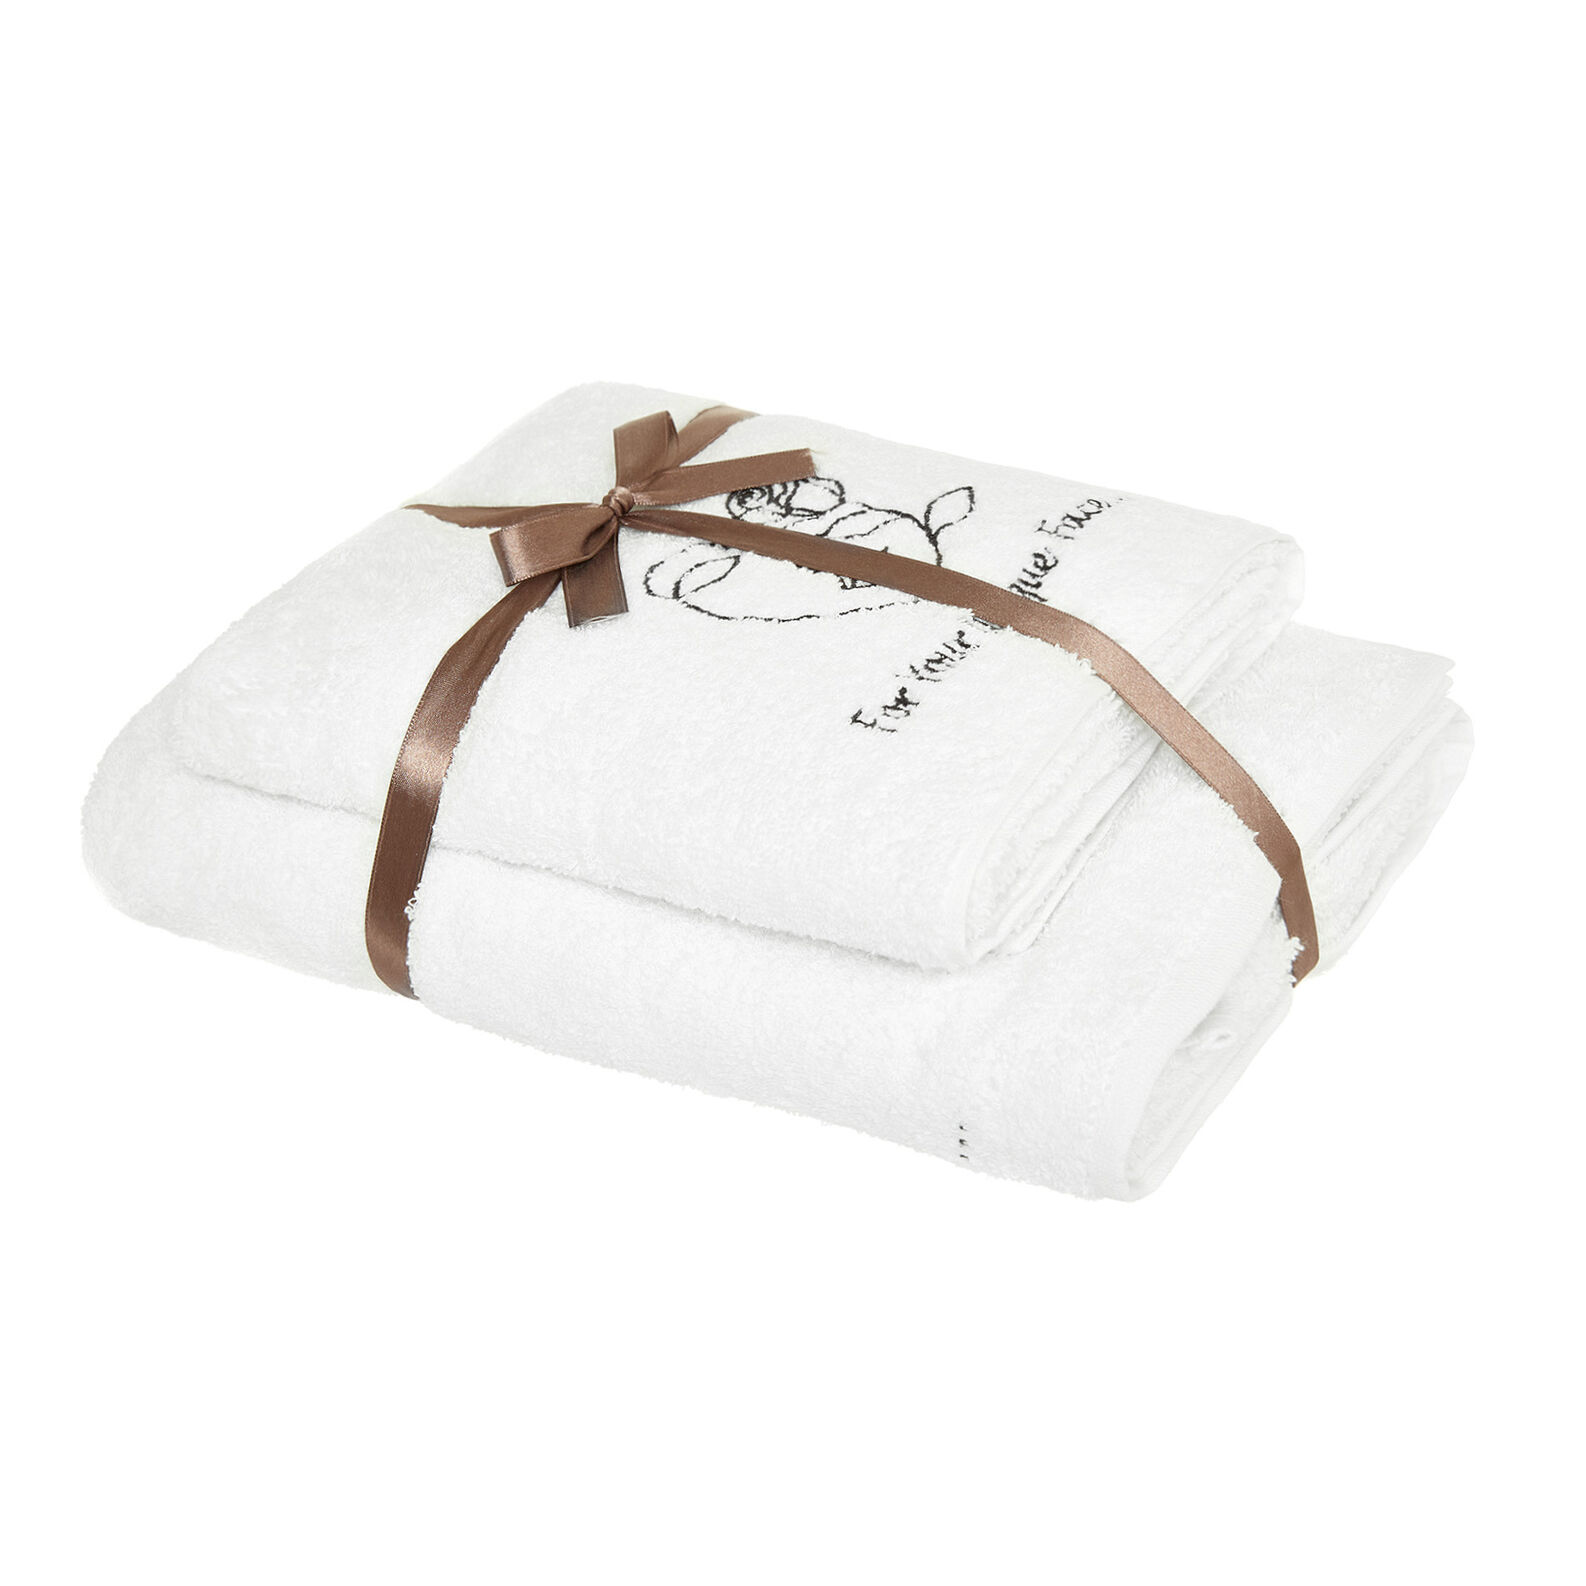 Set of 2 cotton terry towels with embroidery